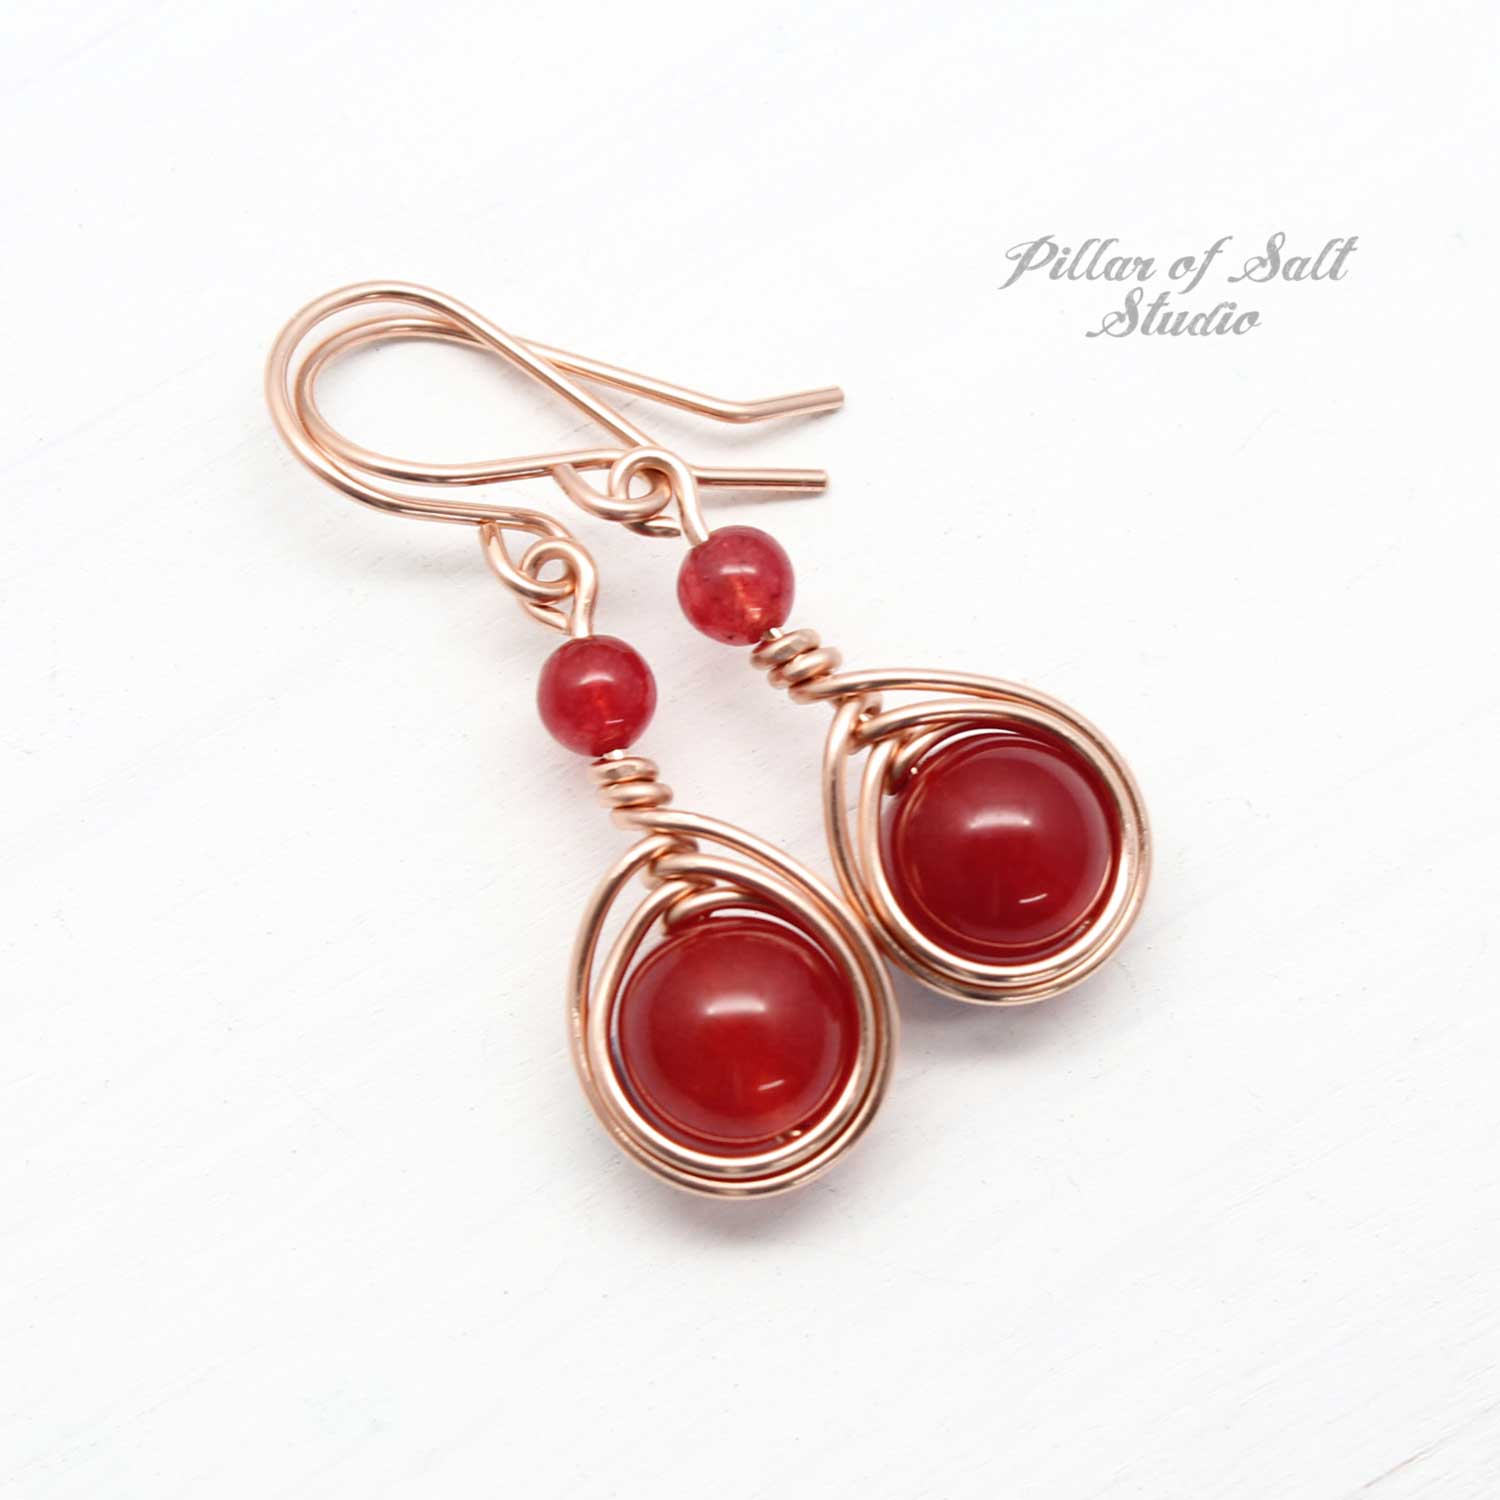 Rose Gold-filled earrings with red quartz stones by Pillar of Salt Studio